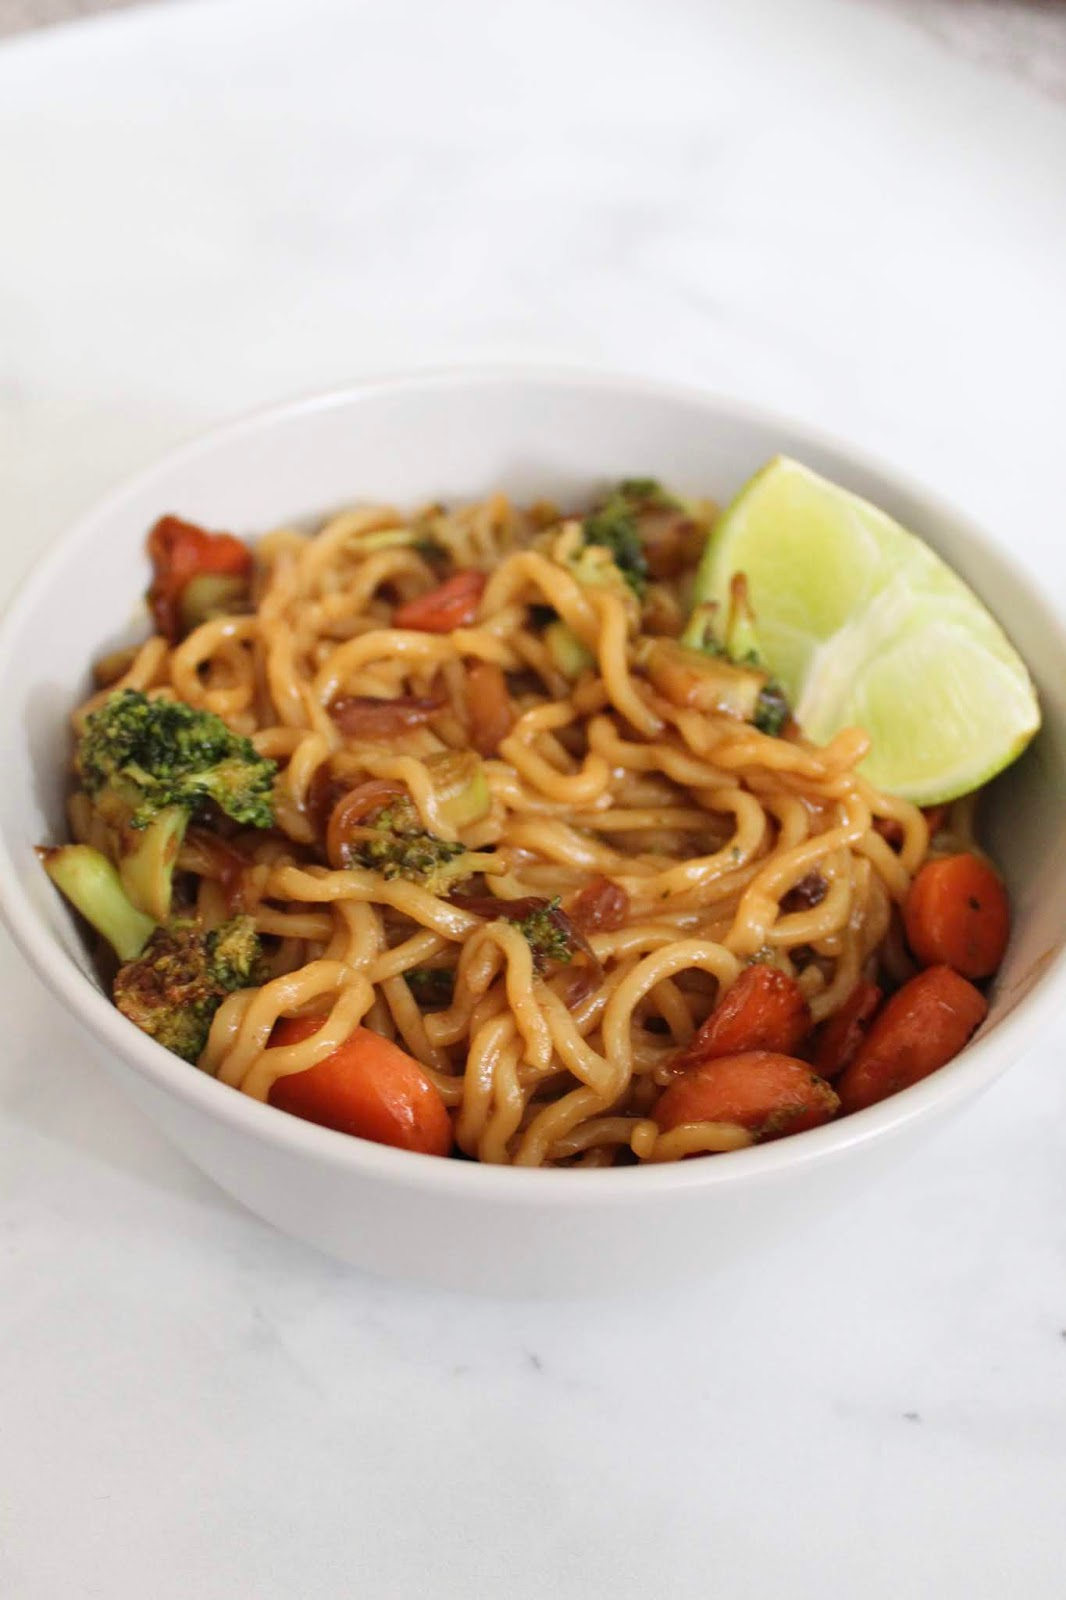 Quick & Delicious Vegan Ramen Noodle Stir Fry Recipe